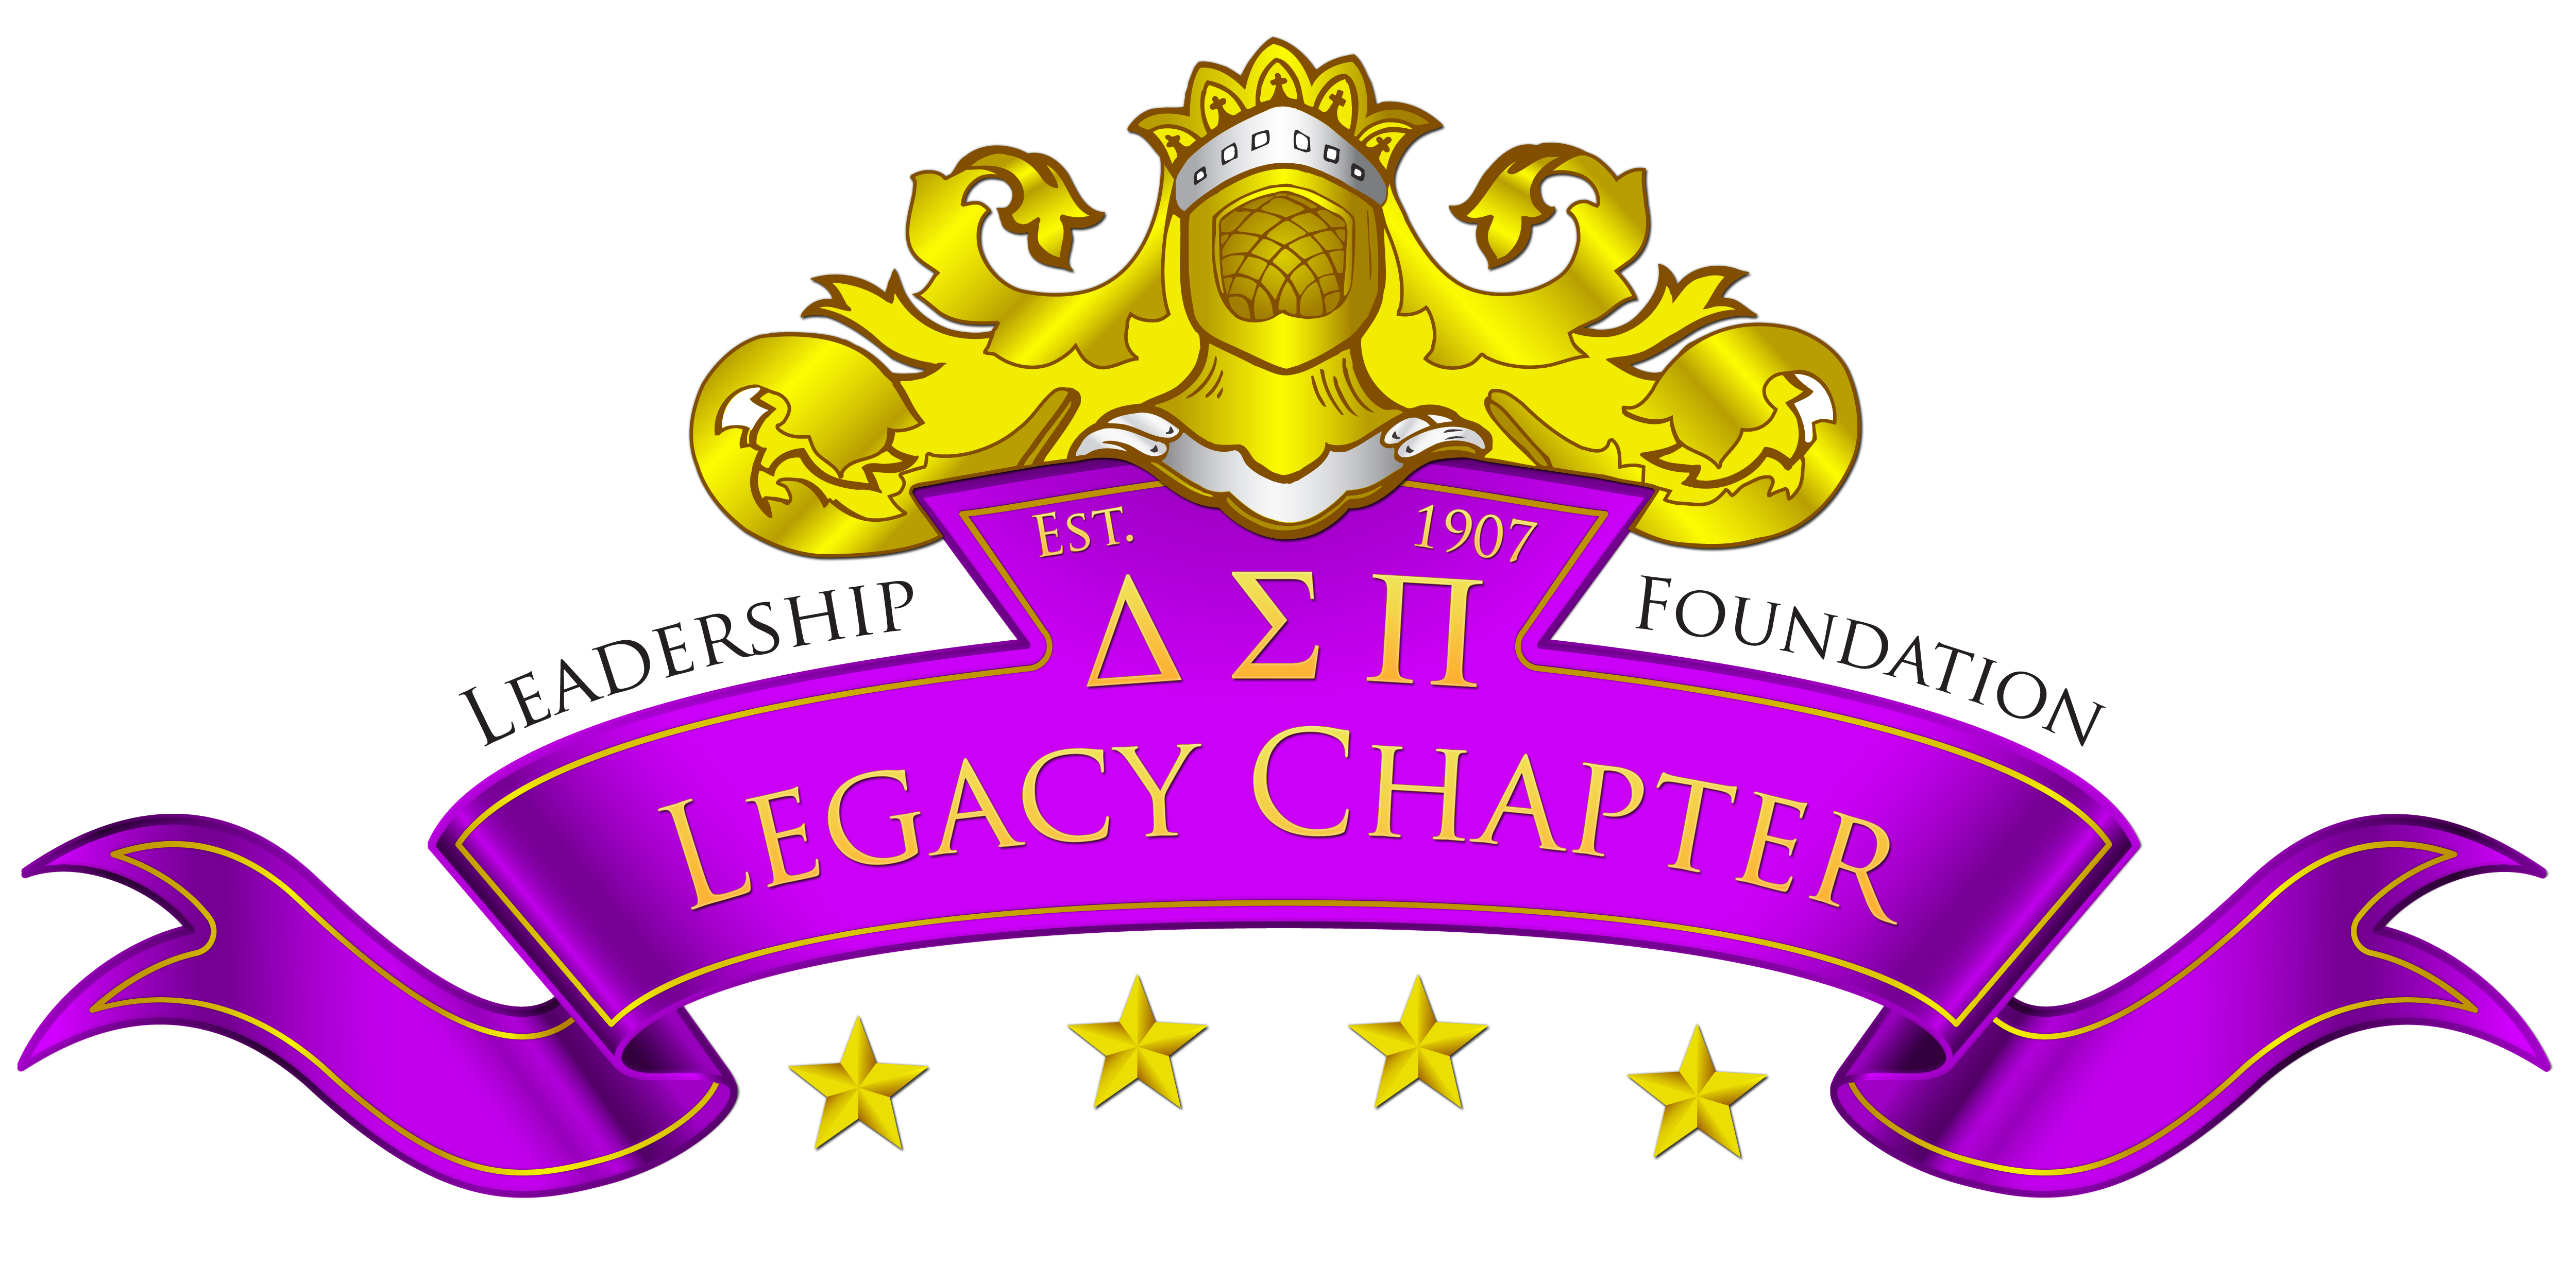 Legacy Chapter